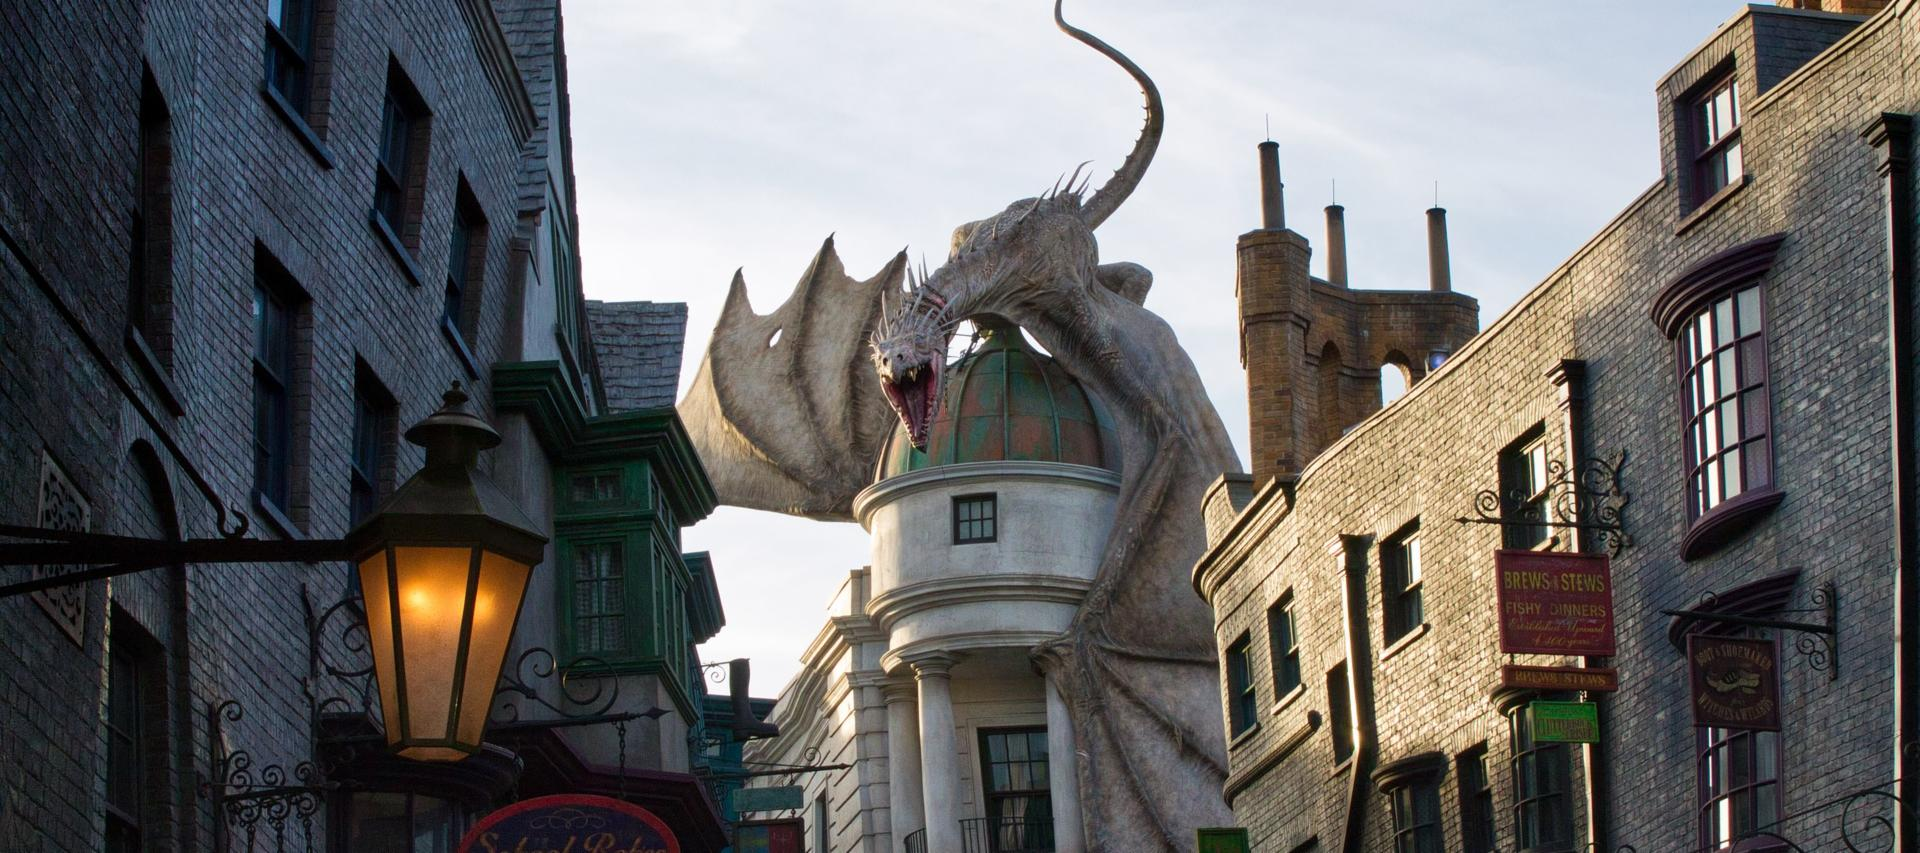 Diagon Alley at the Wizarding World of Harry Potter in Universal Orlando | Your Guide to Universal Orlando